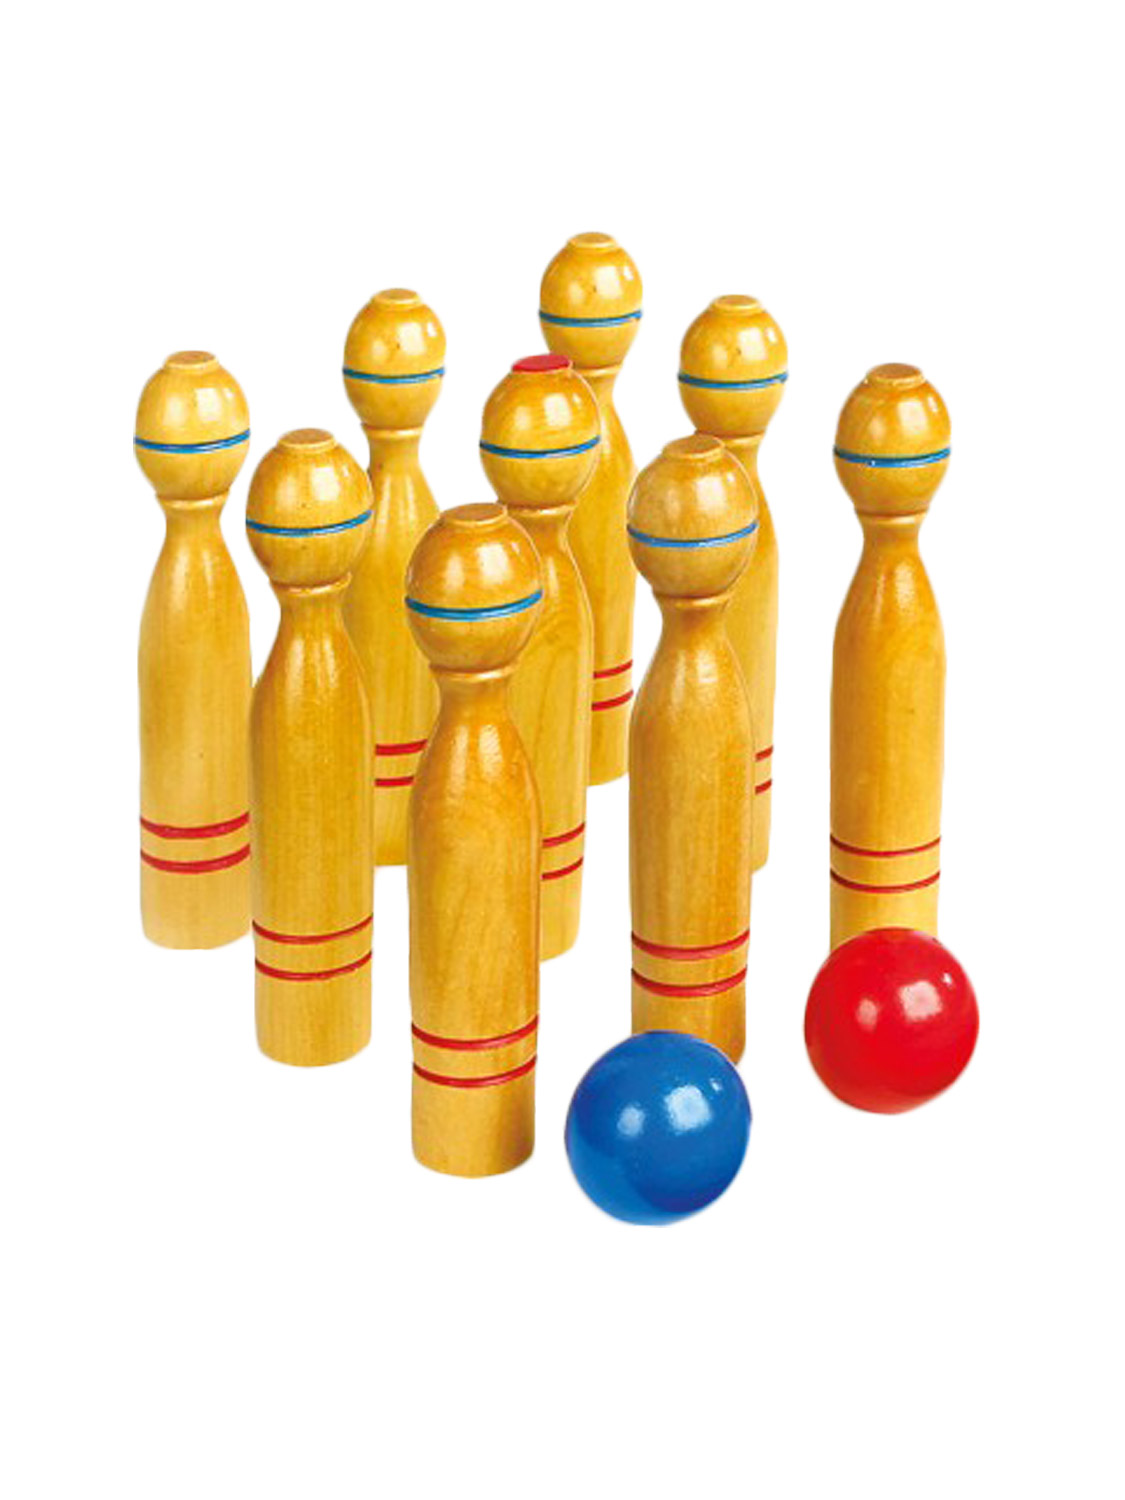 Toys For Adults : Traditional quality wooden garden games outdoor lawn party